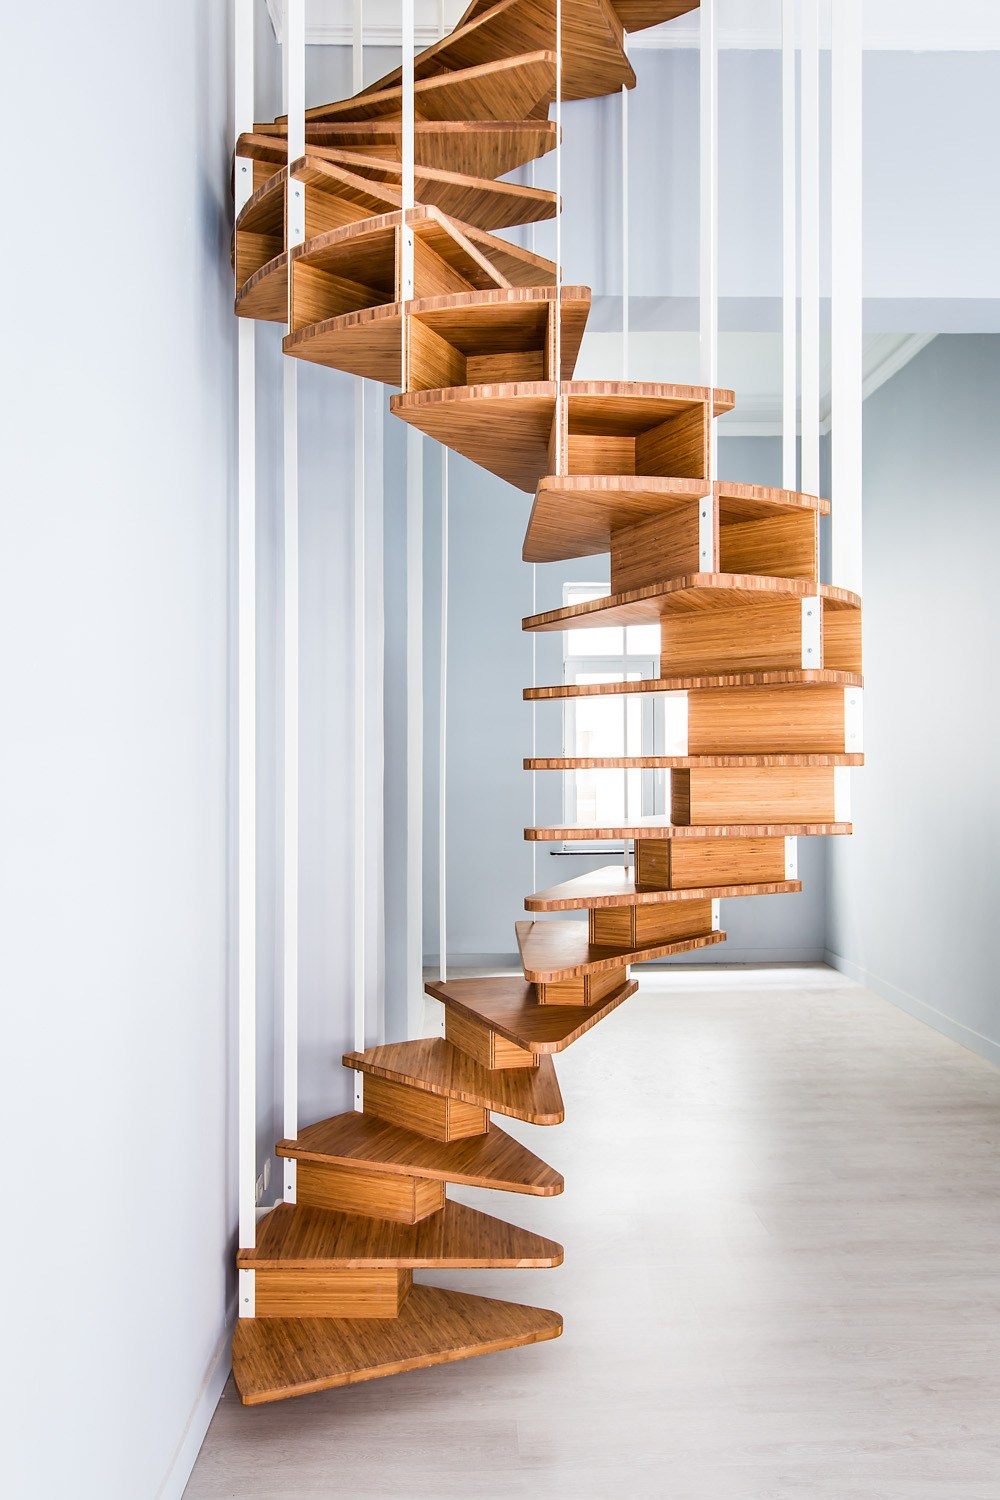 How to build a wooden spiral staircase my staircase gallery for Spiral staircase design plans